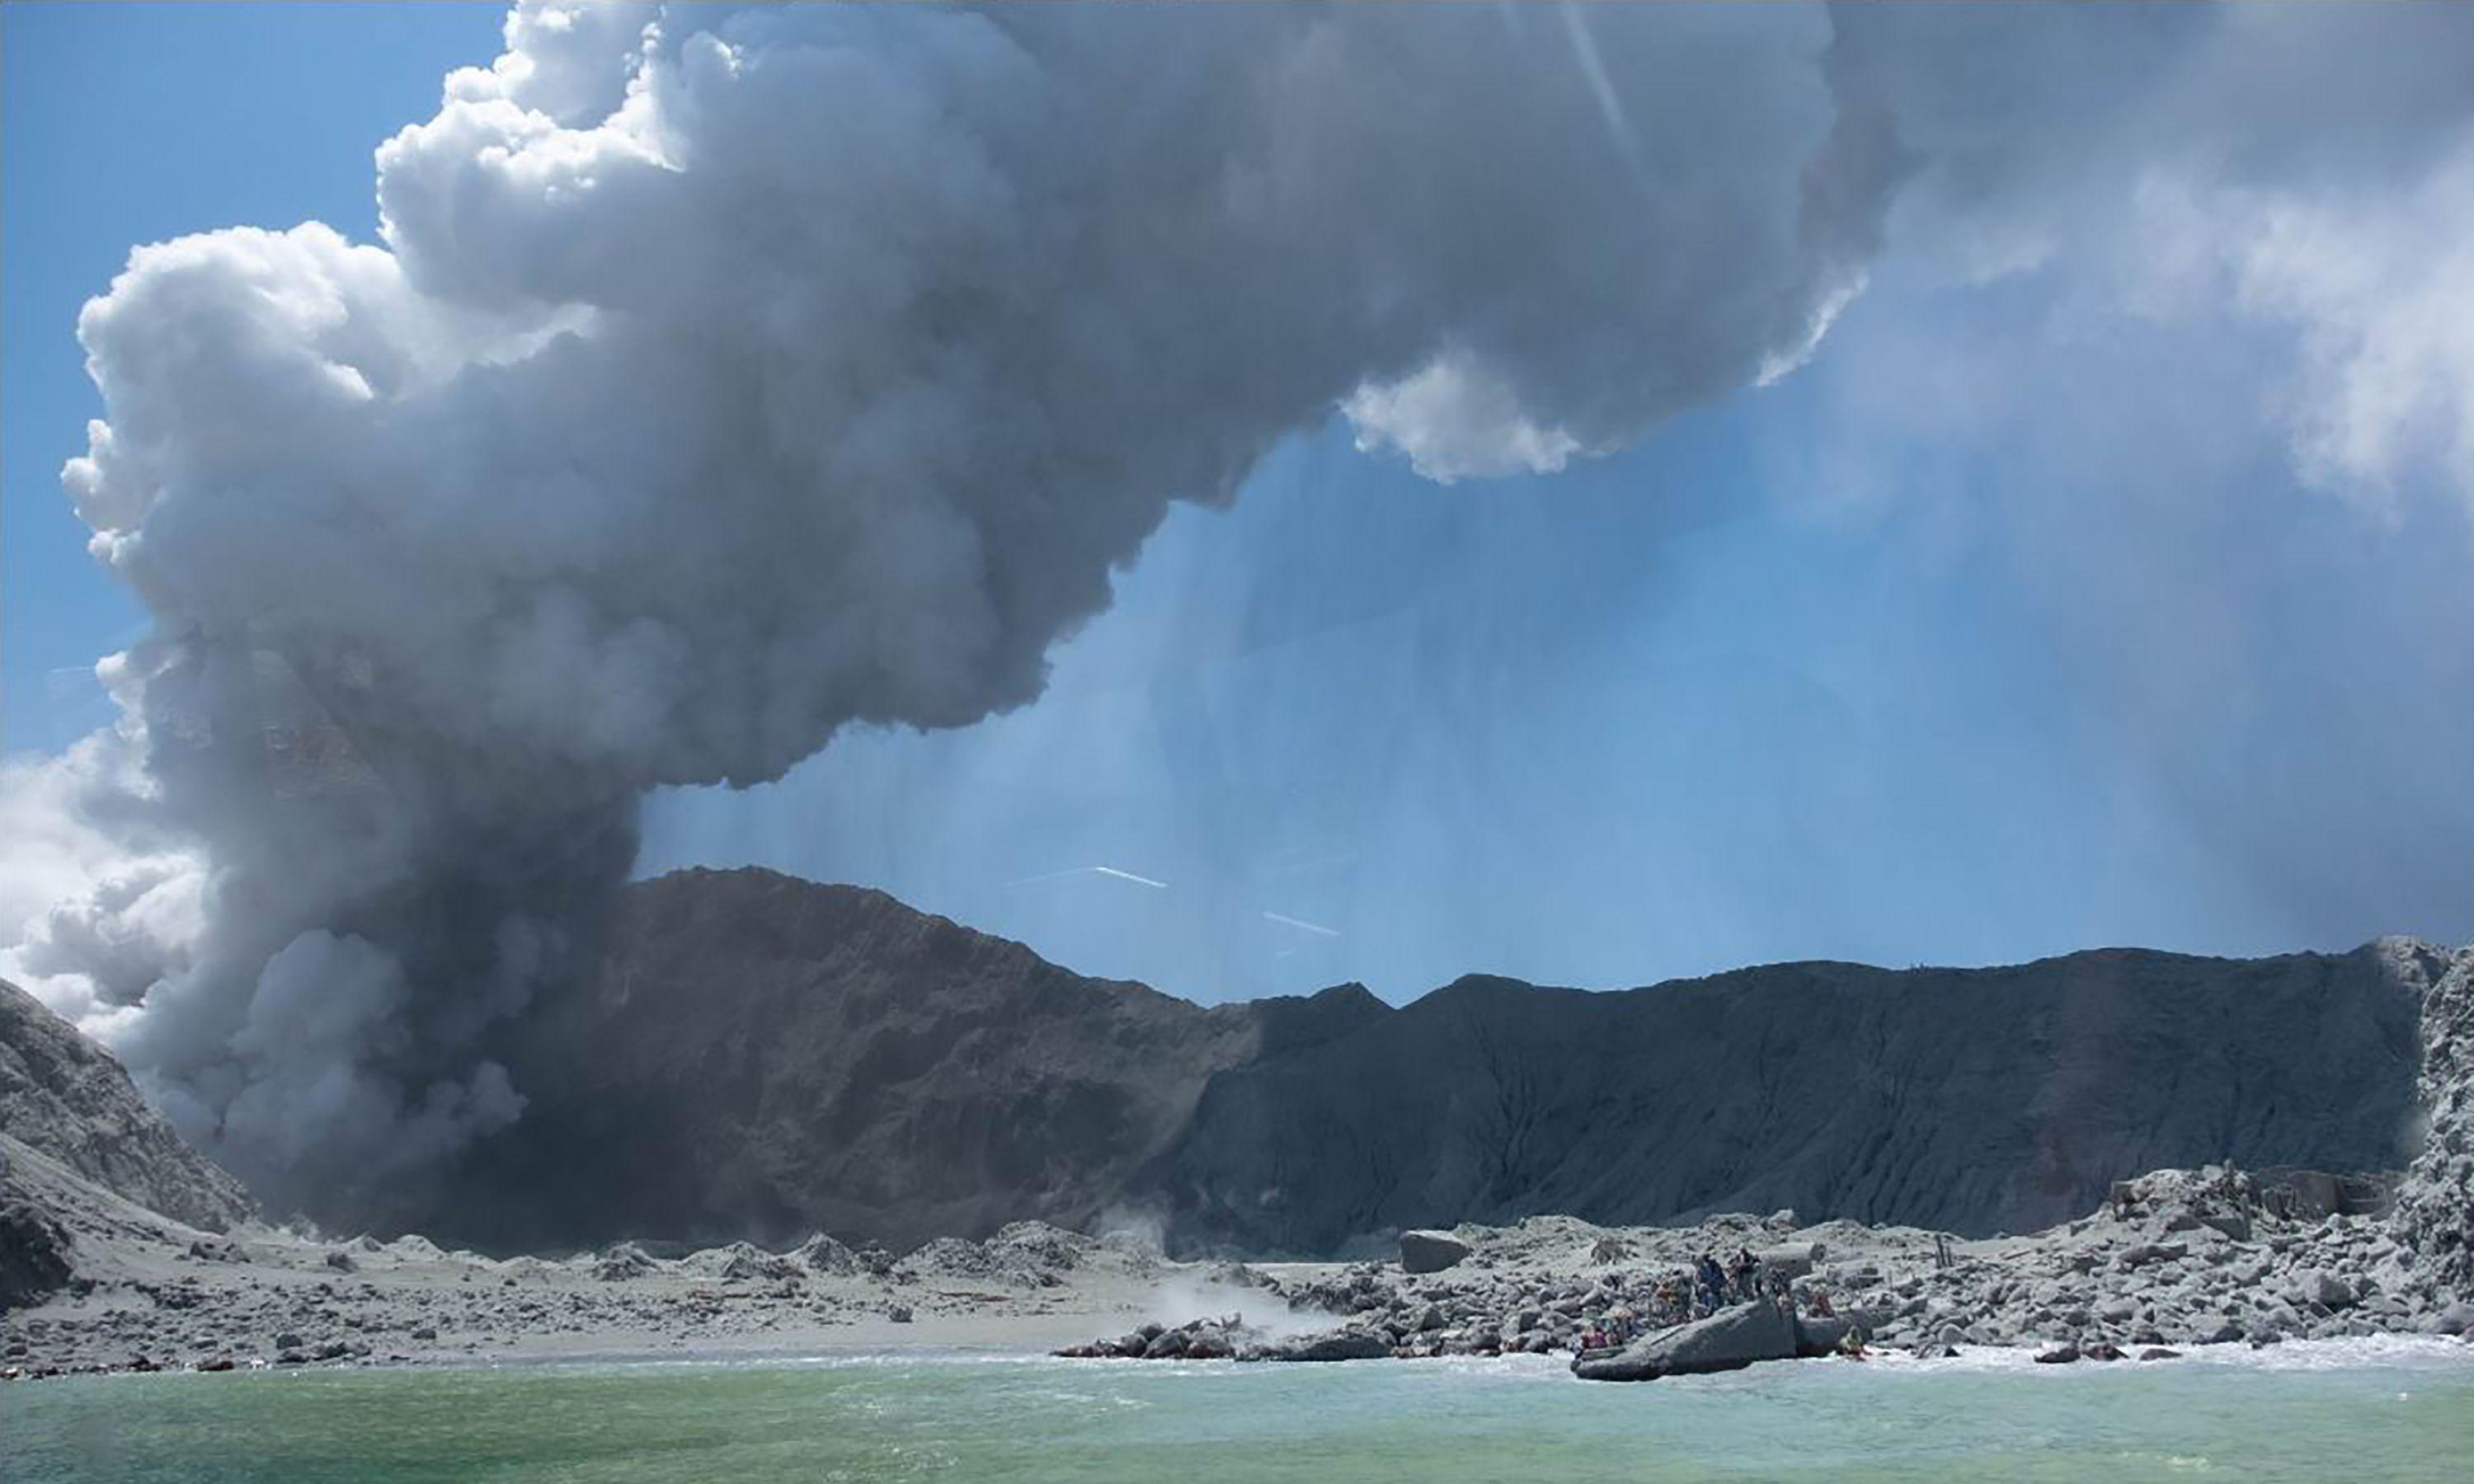 When I was growing up volcanic activity on Whakaari was continuous – yesterday was different